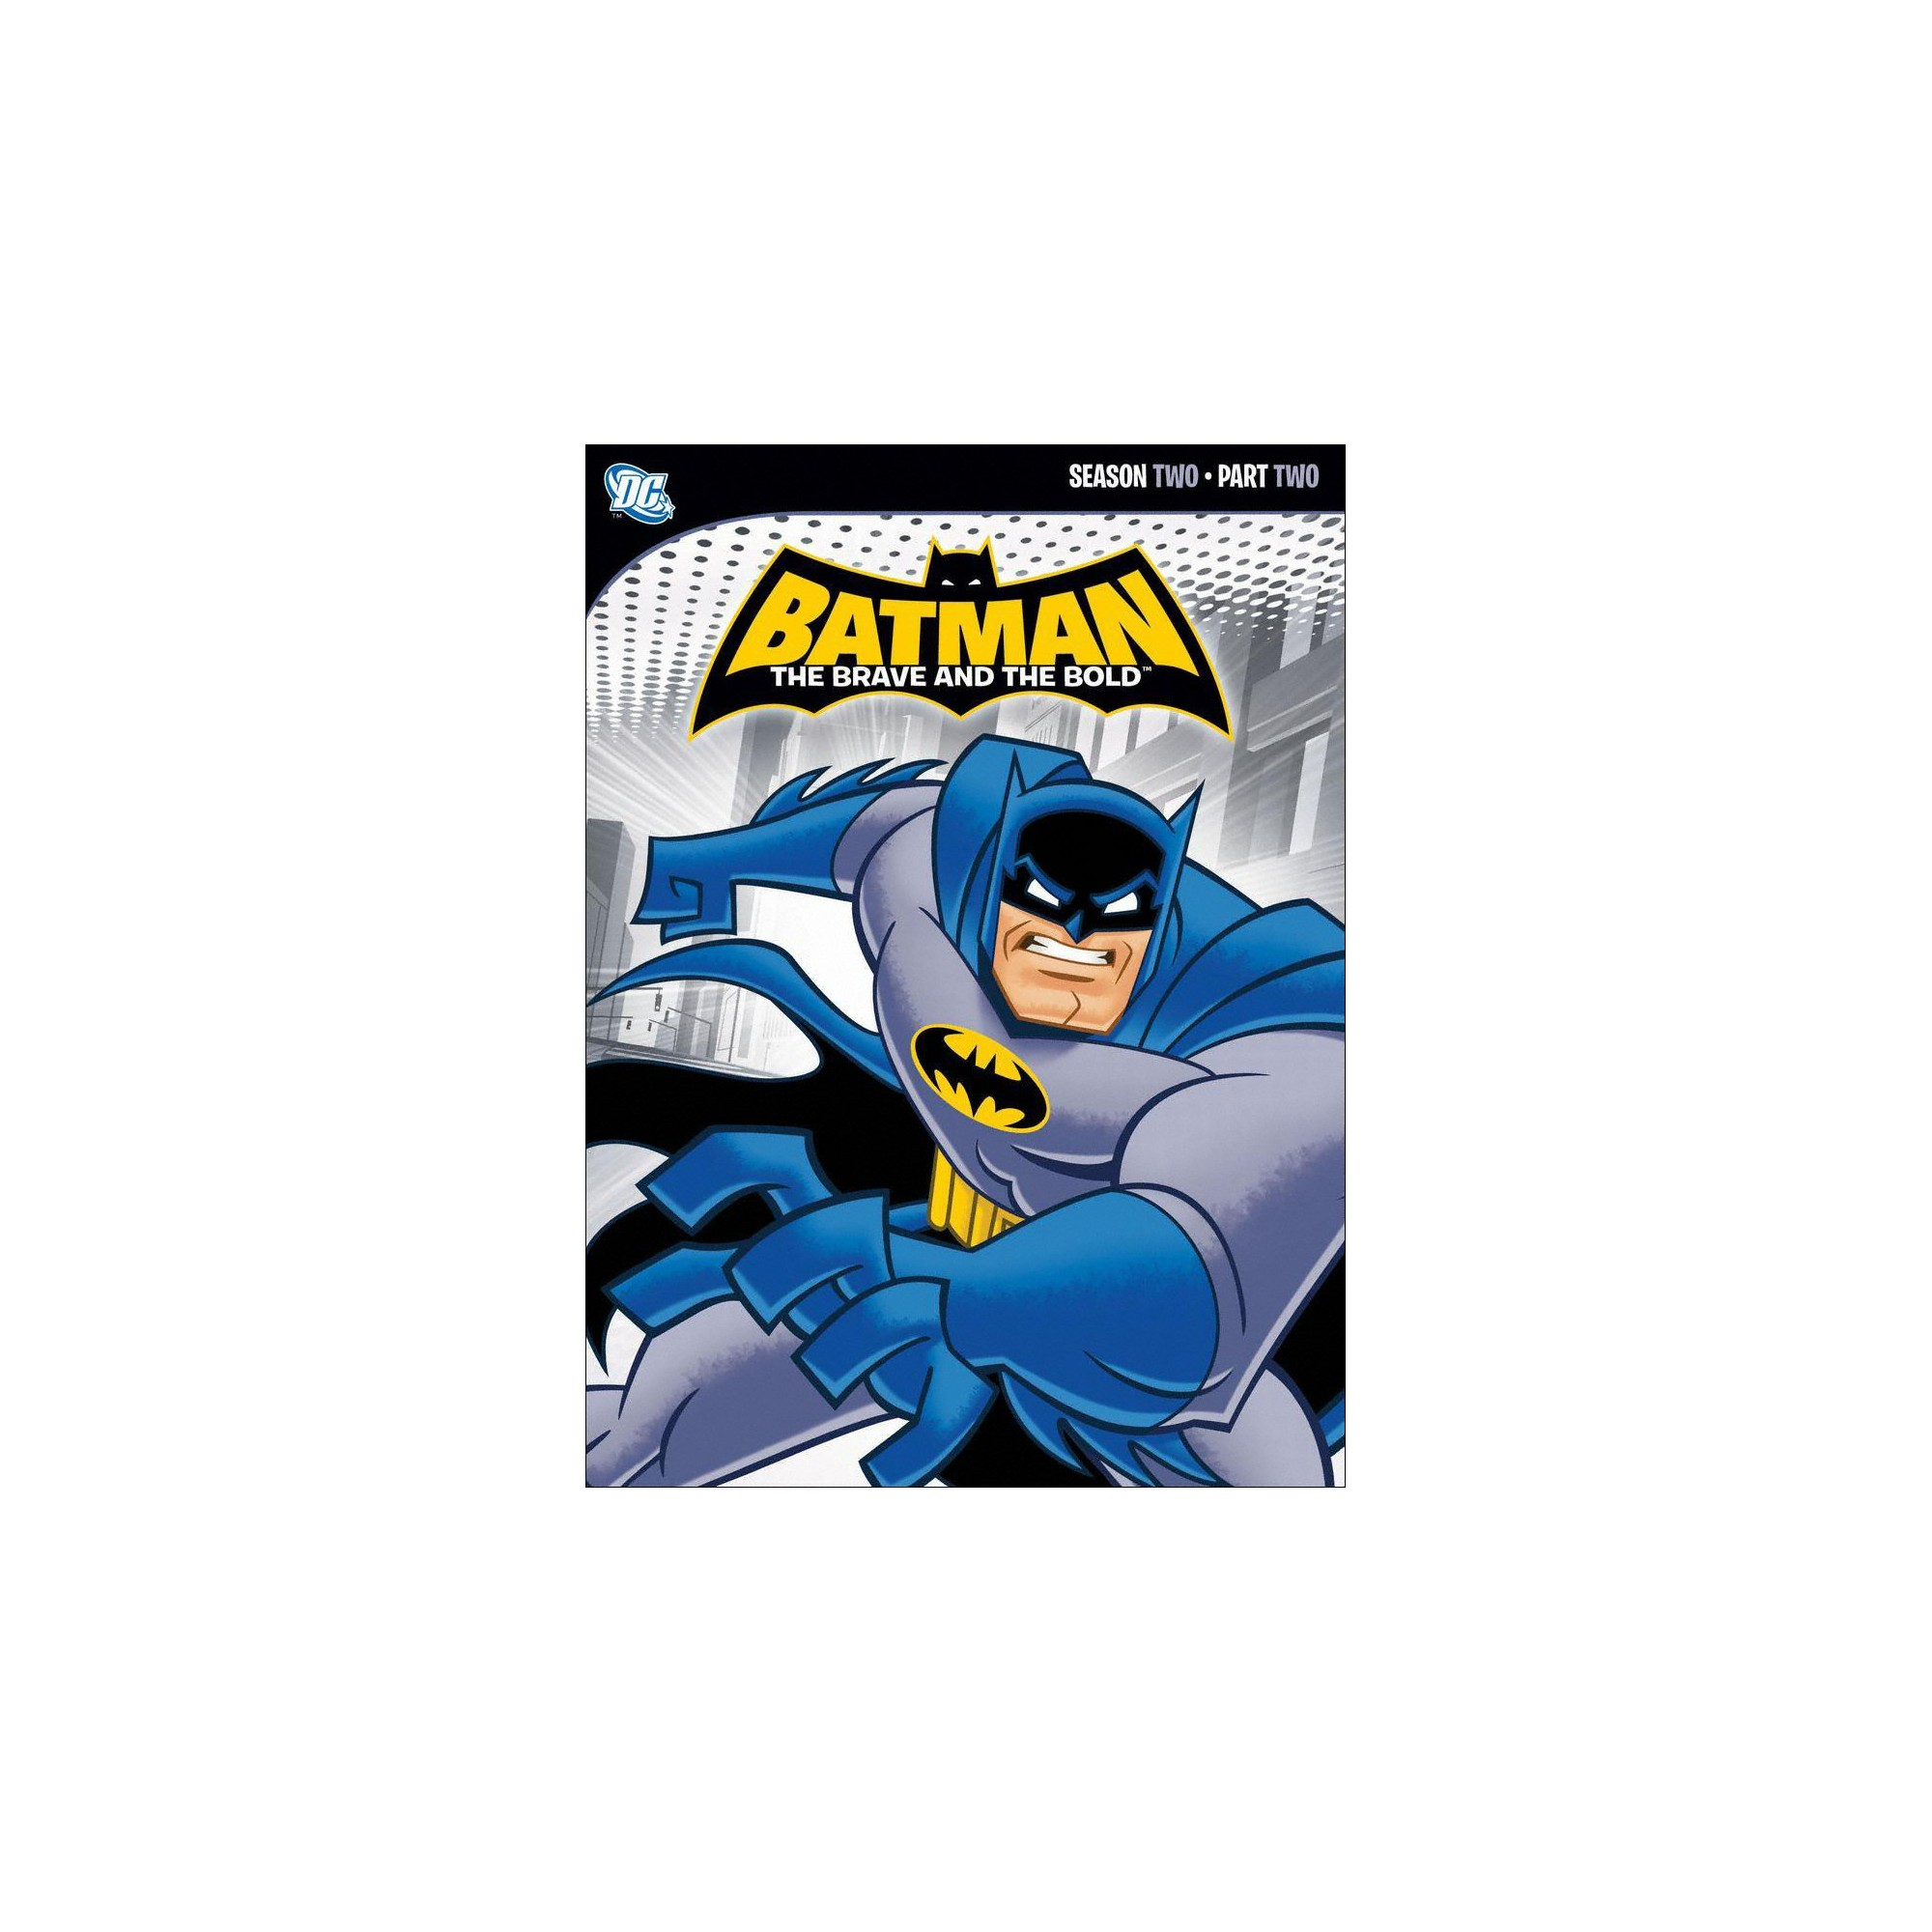 Batman The Brave The Bold Season 2 Part 2 Dvd With Images